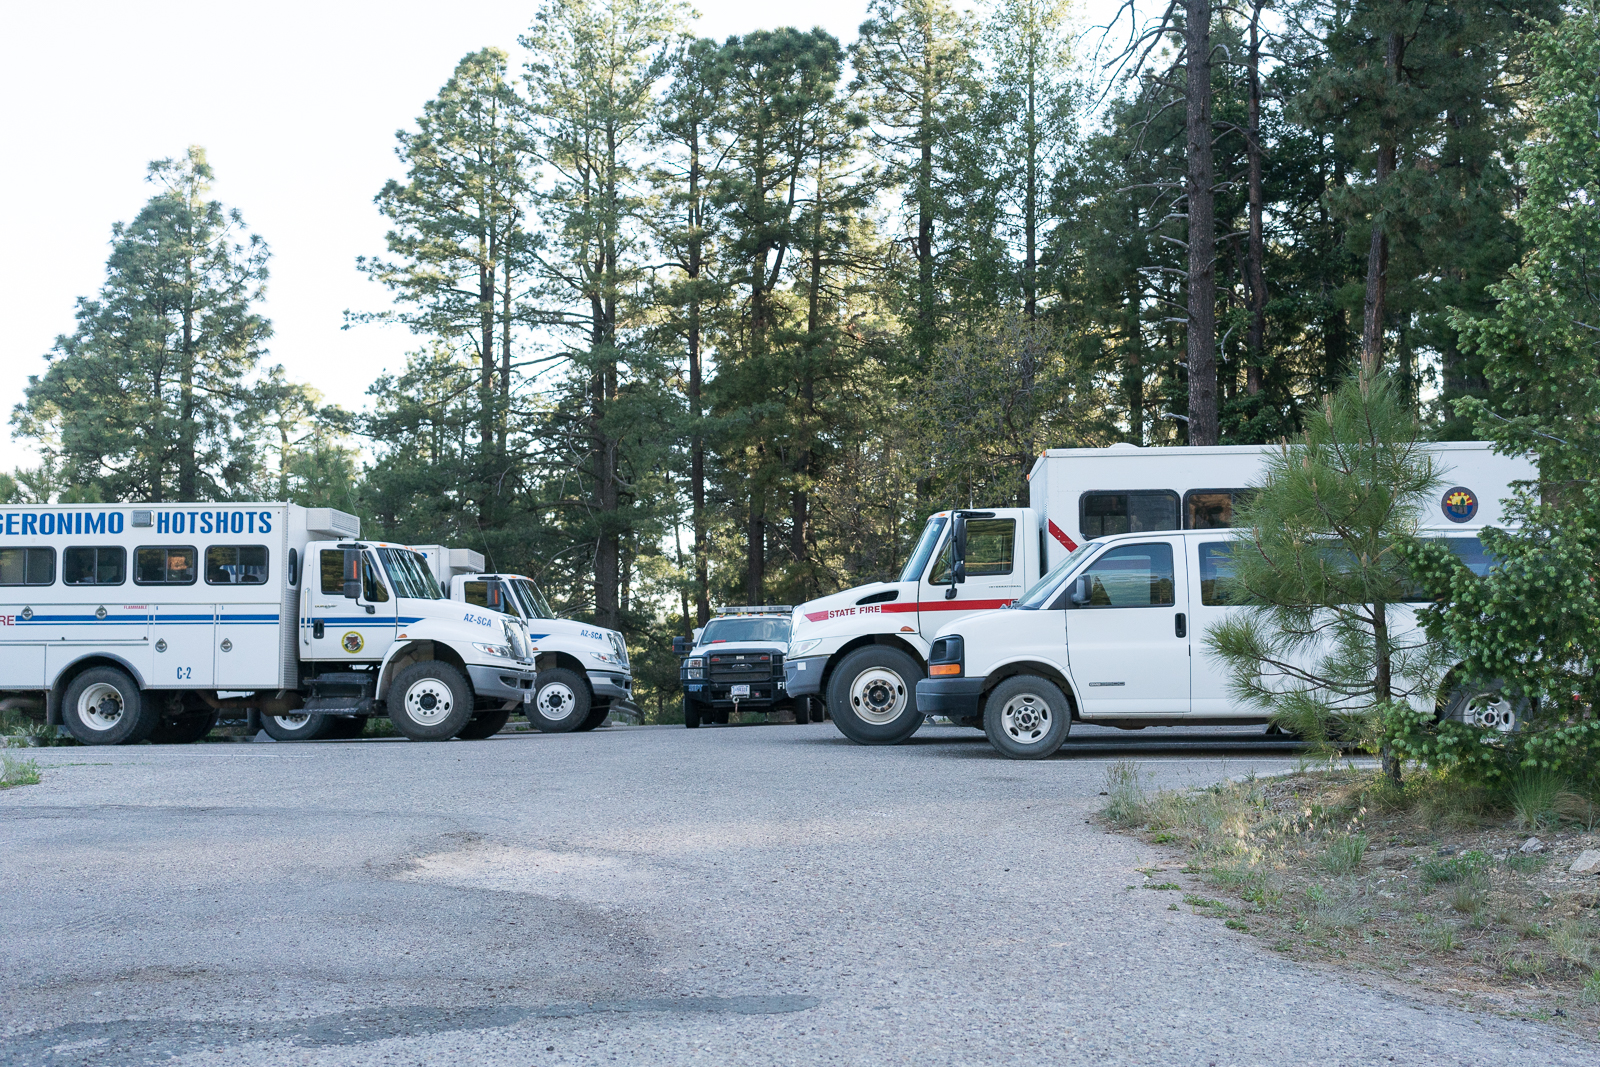 Fire Crew Vehicles at the Box Camp Trail for the Montrose Fire. May 2016.